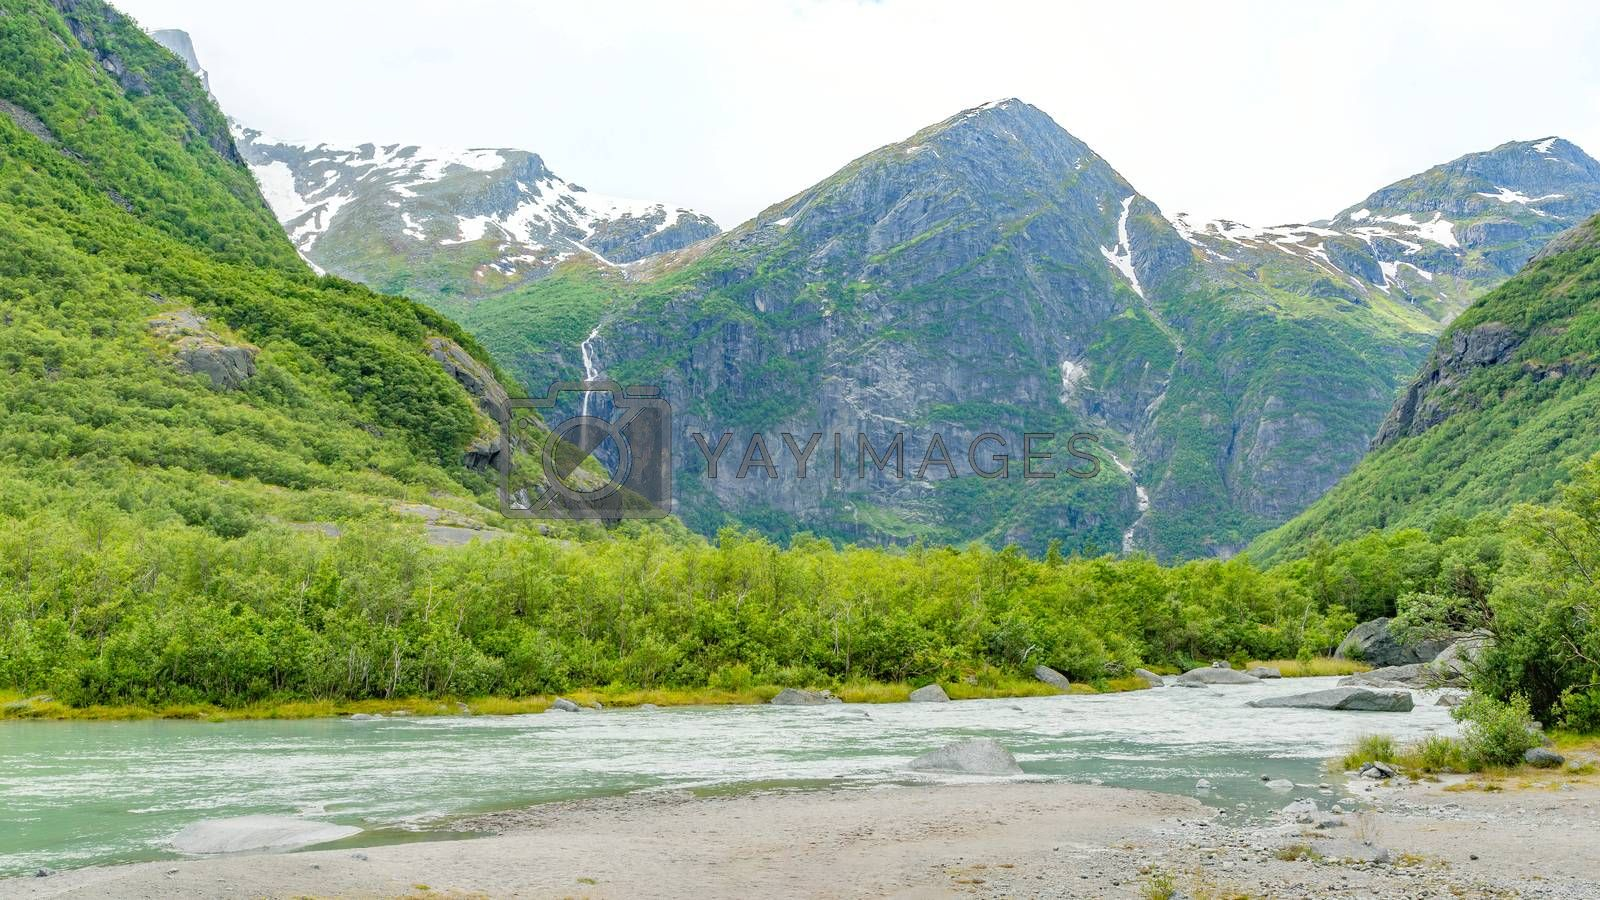 Norway landscapes. Beautiful mountainous landscape around Norwegian fjord in sunny day. Beautiful Nature Norway natural landscape.